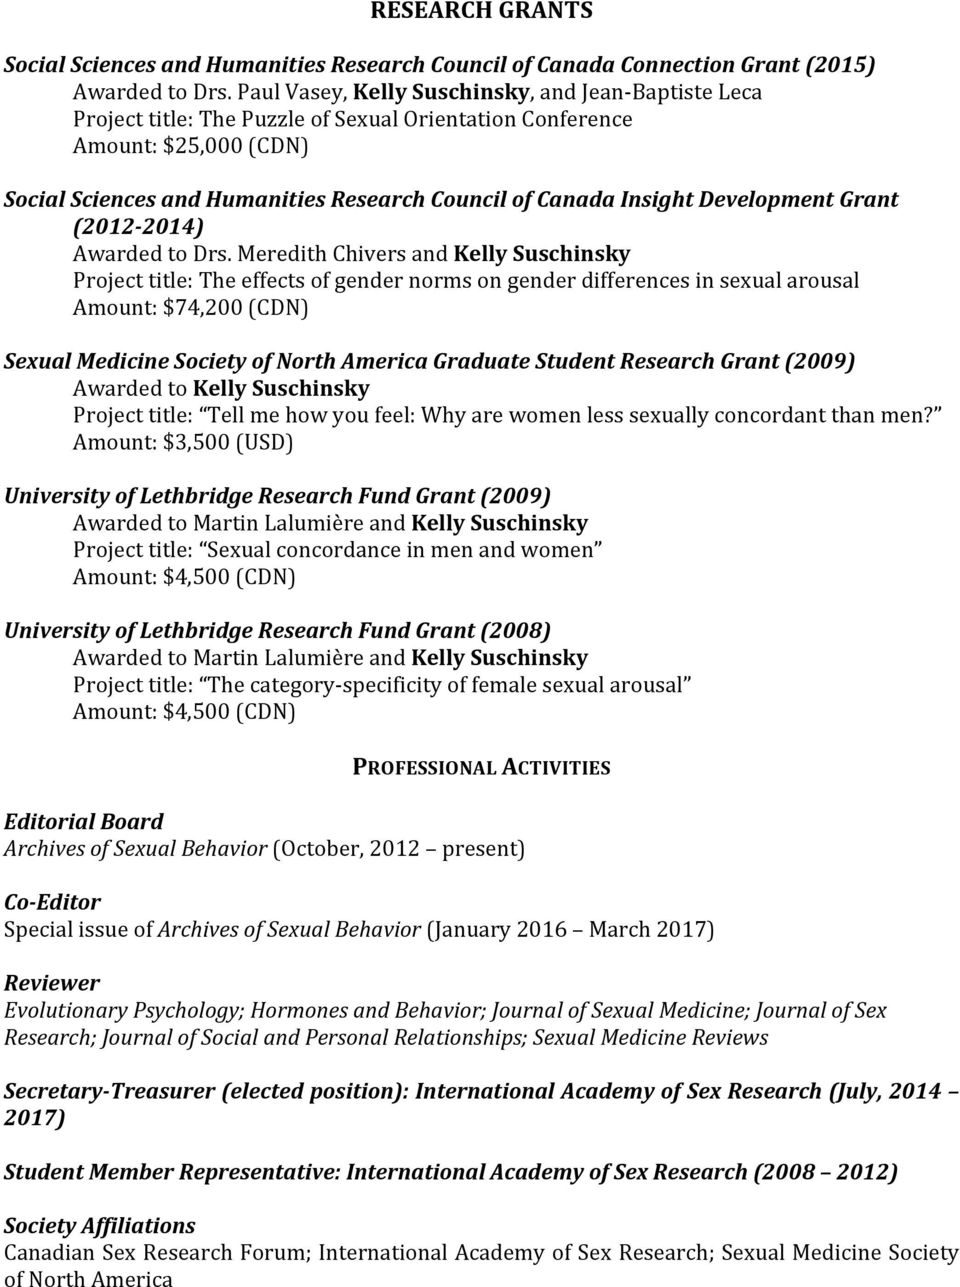 Sexual orientation psychology research assistant